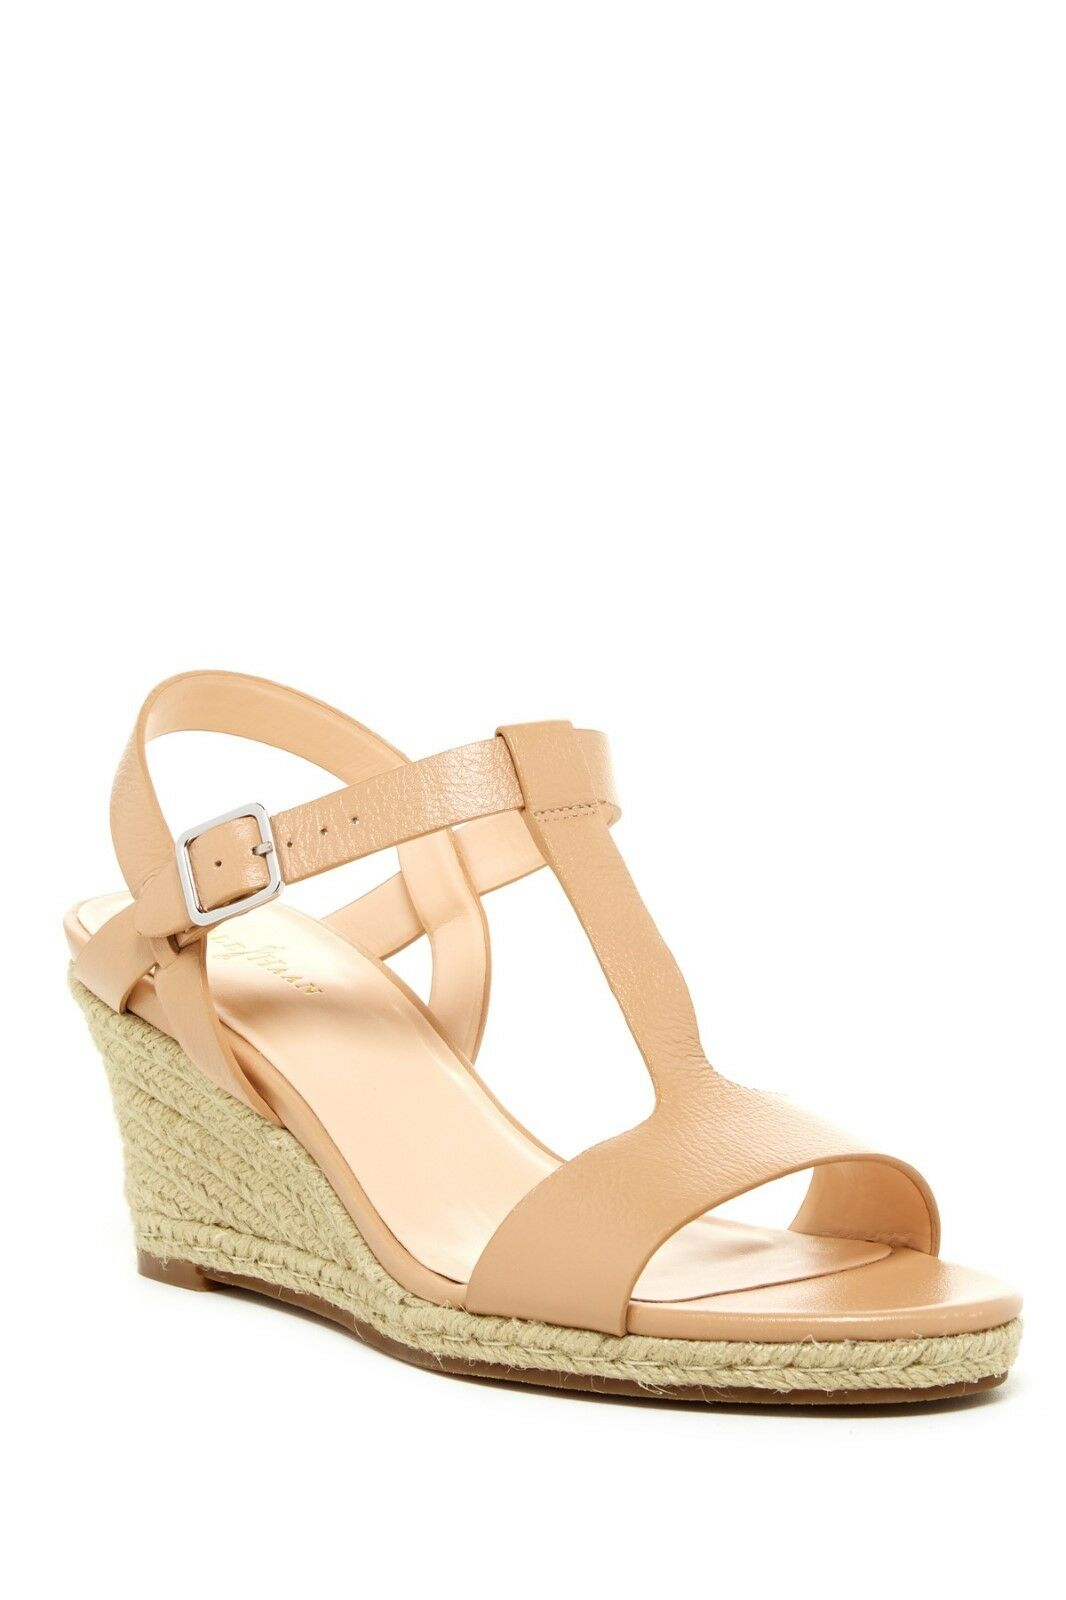 180 Cole Haan Elizabeth Wedge Sandal shoes Womens Sandstone 10 NEW IN BOX